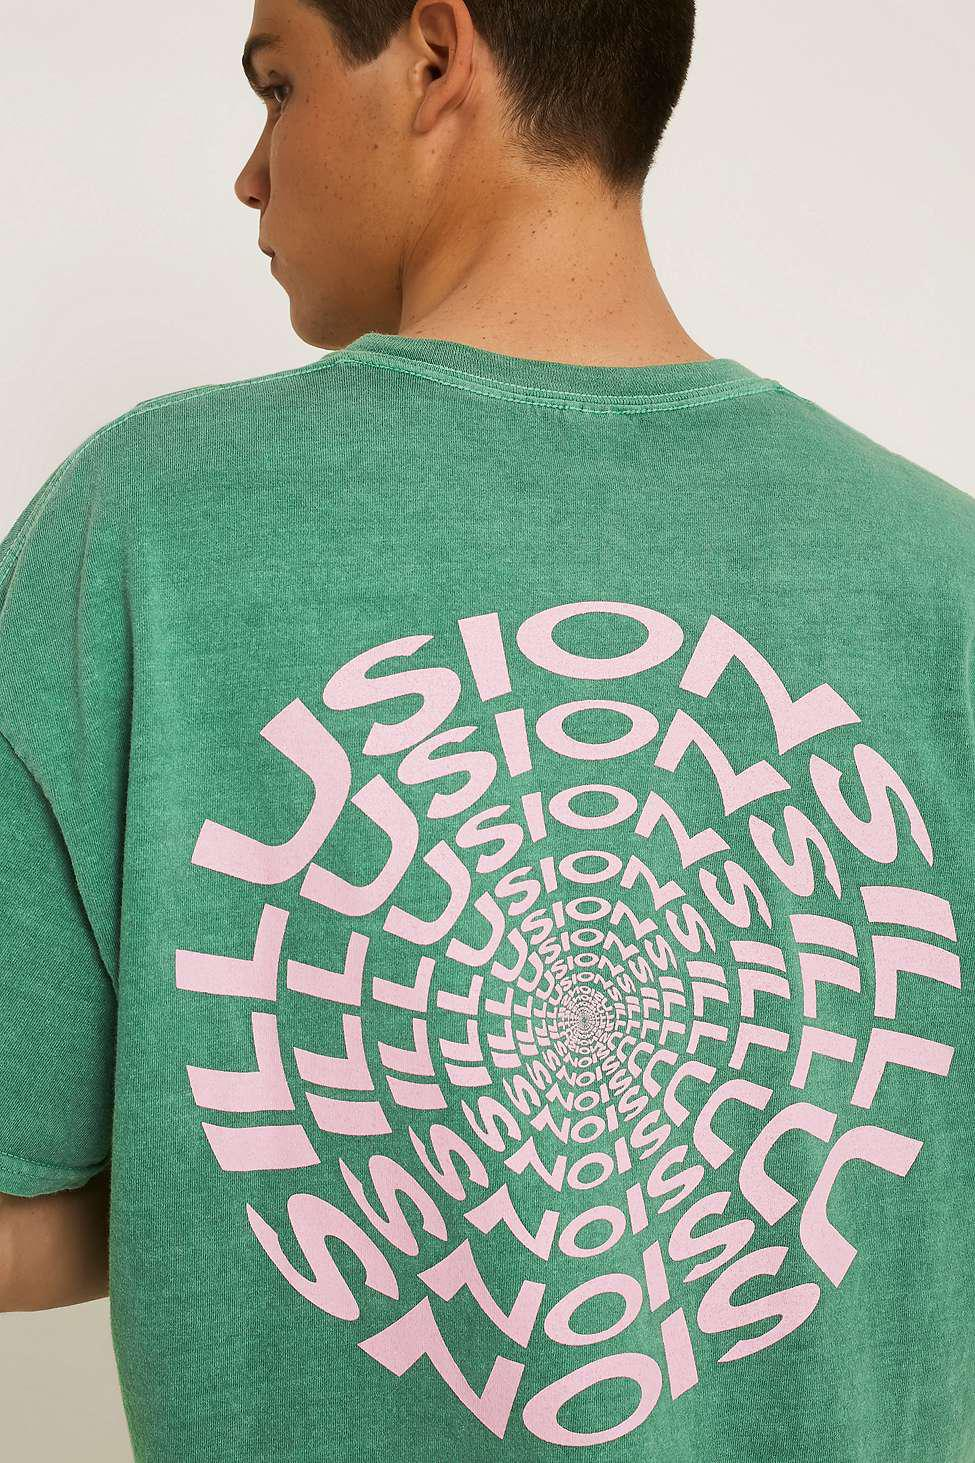 f3f3c9e8c2 Urban Outfitters Uo Green & Pink Illusions T-shirt - Mens S in Green ...